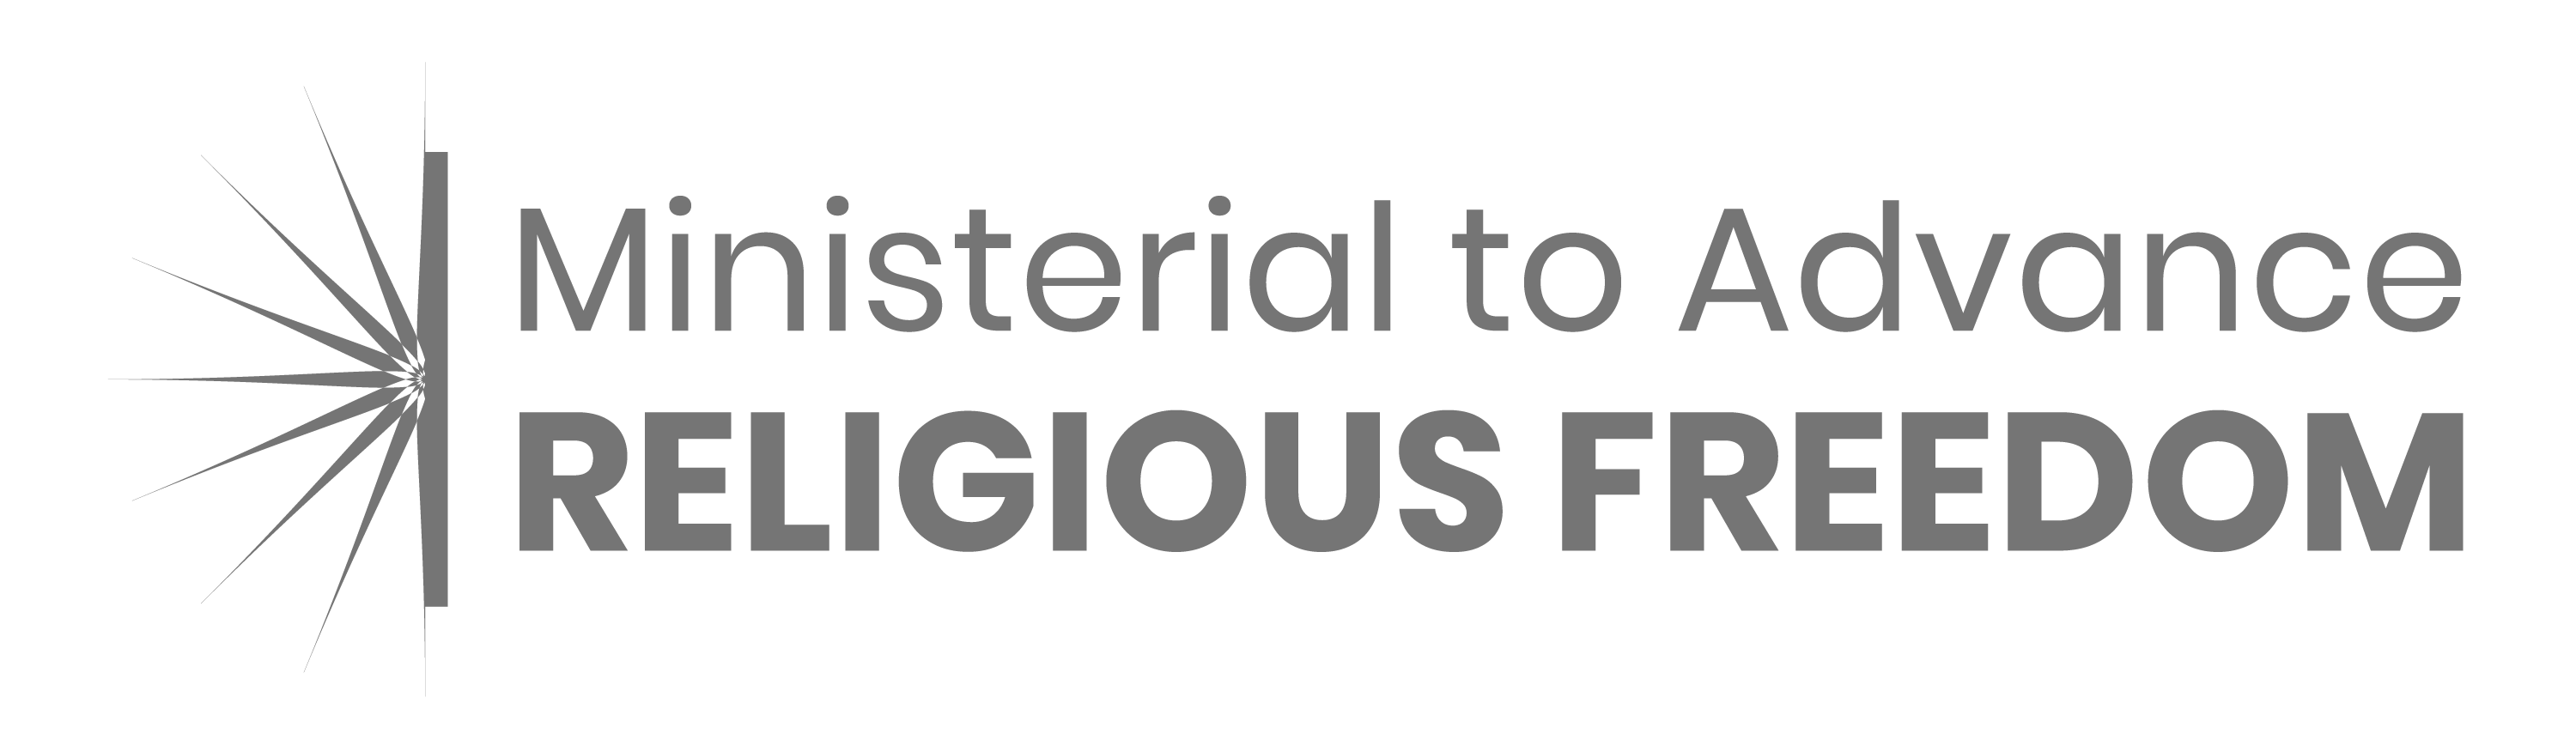 Ministerial to Advance Religious Freedom logo